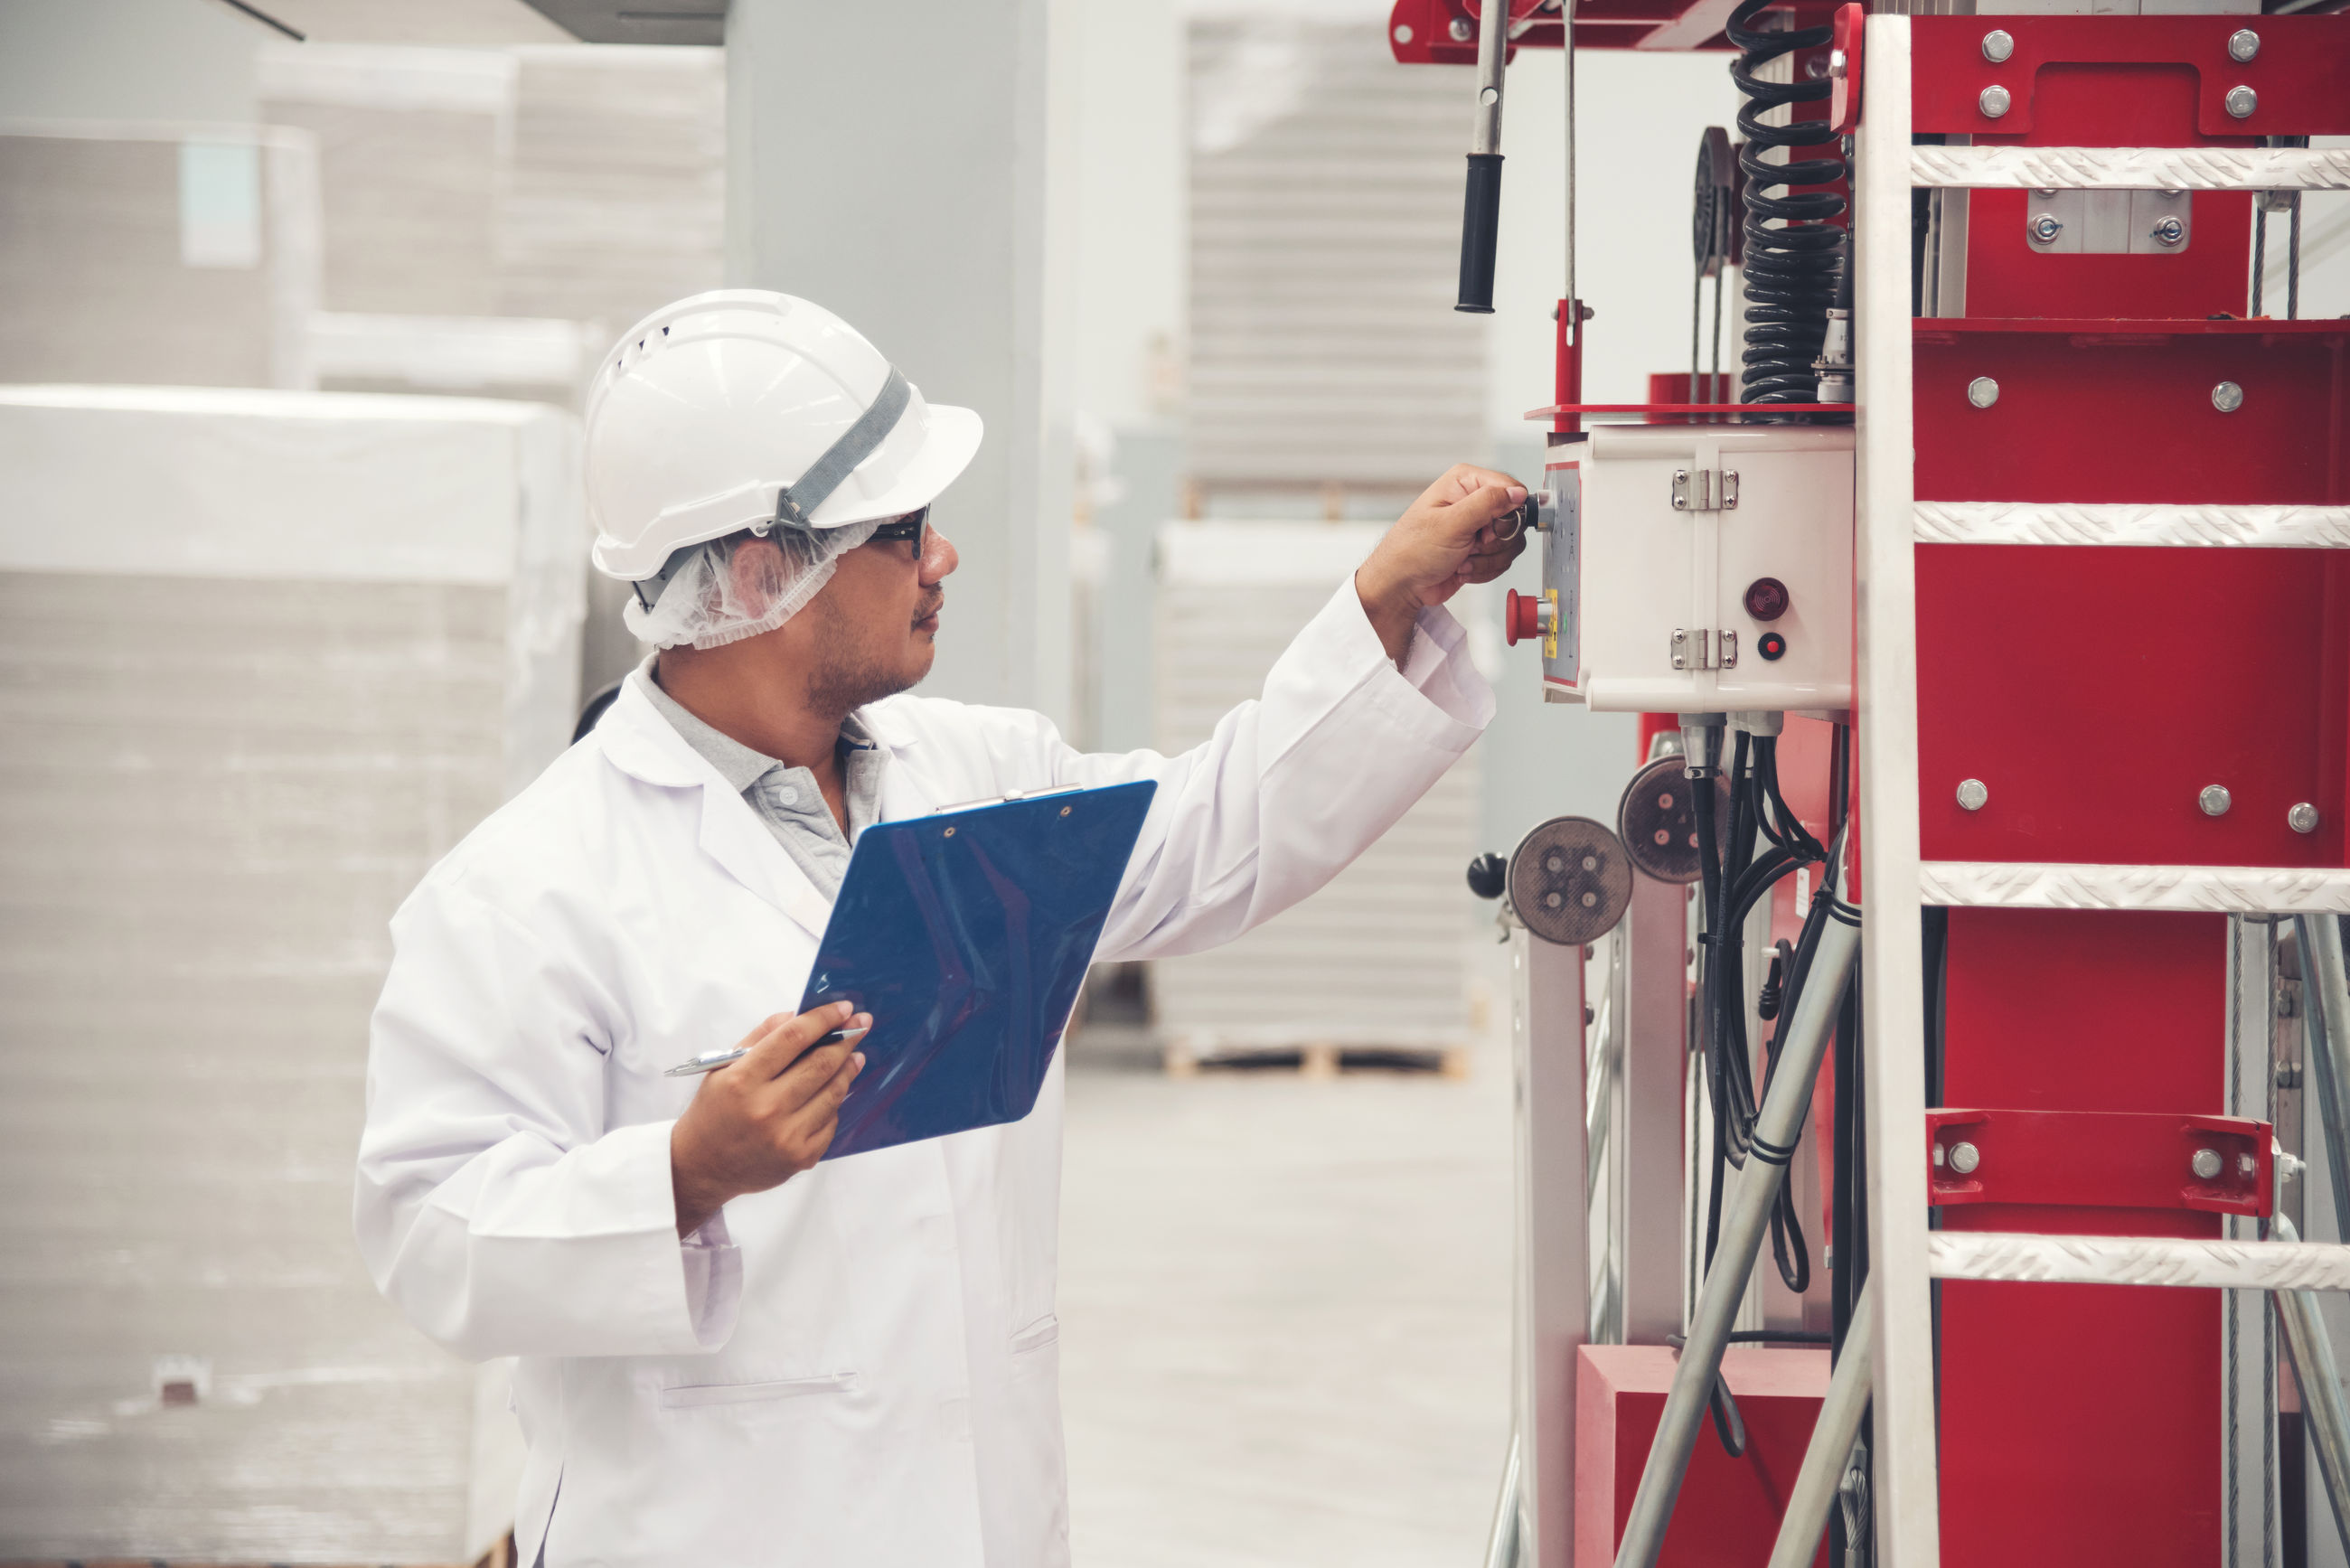 Male supervisor checking machinery at factory